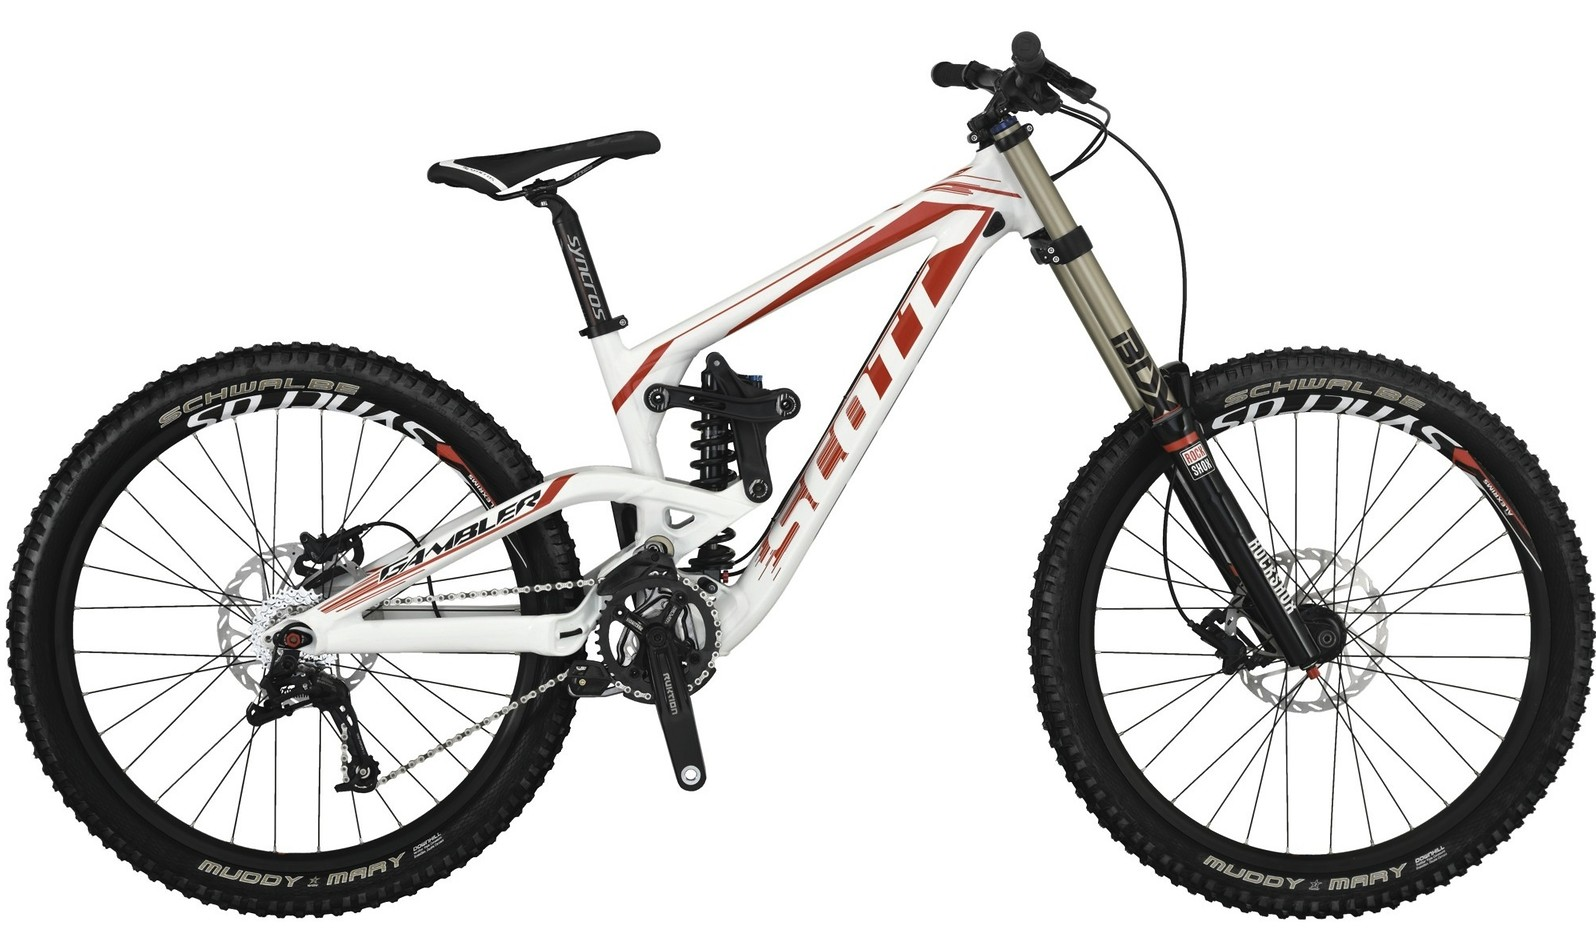 2013 Scott Gambler 30 Bike Reviews Comparisons Specs